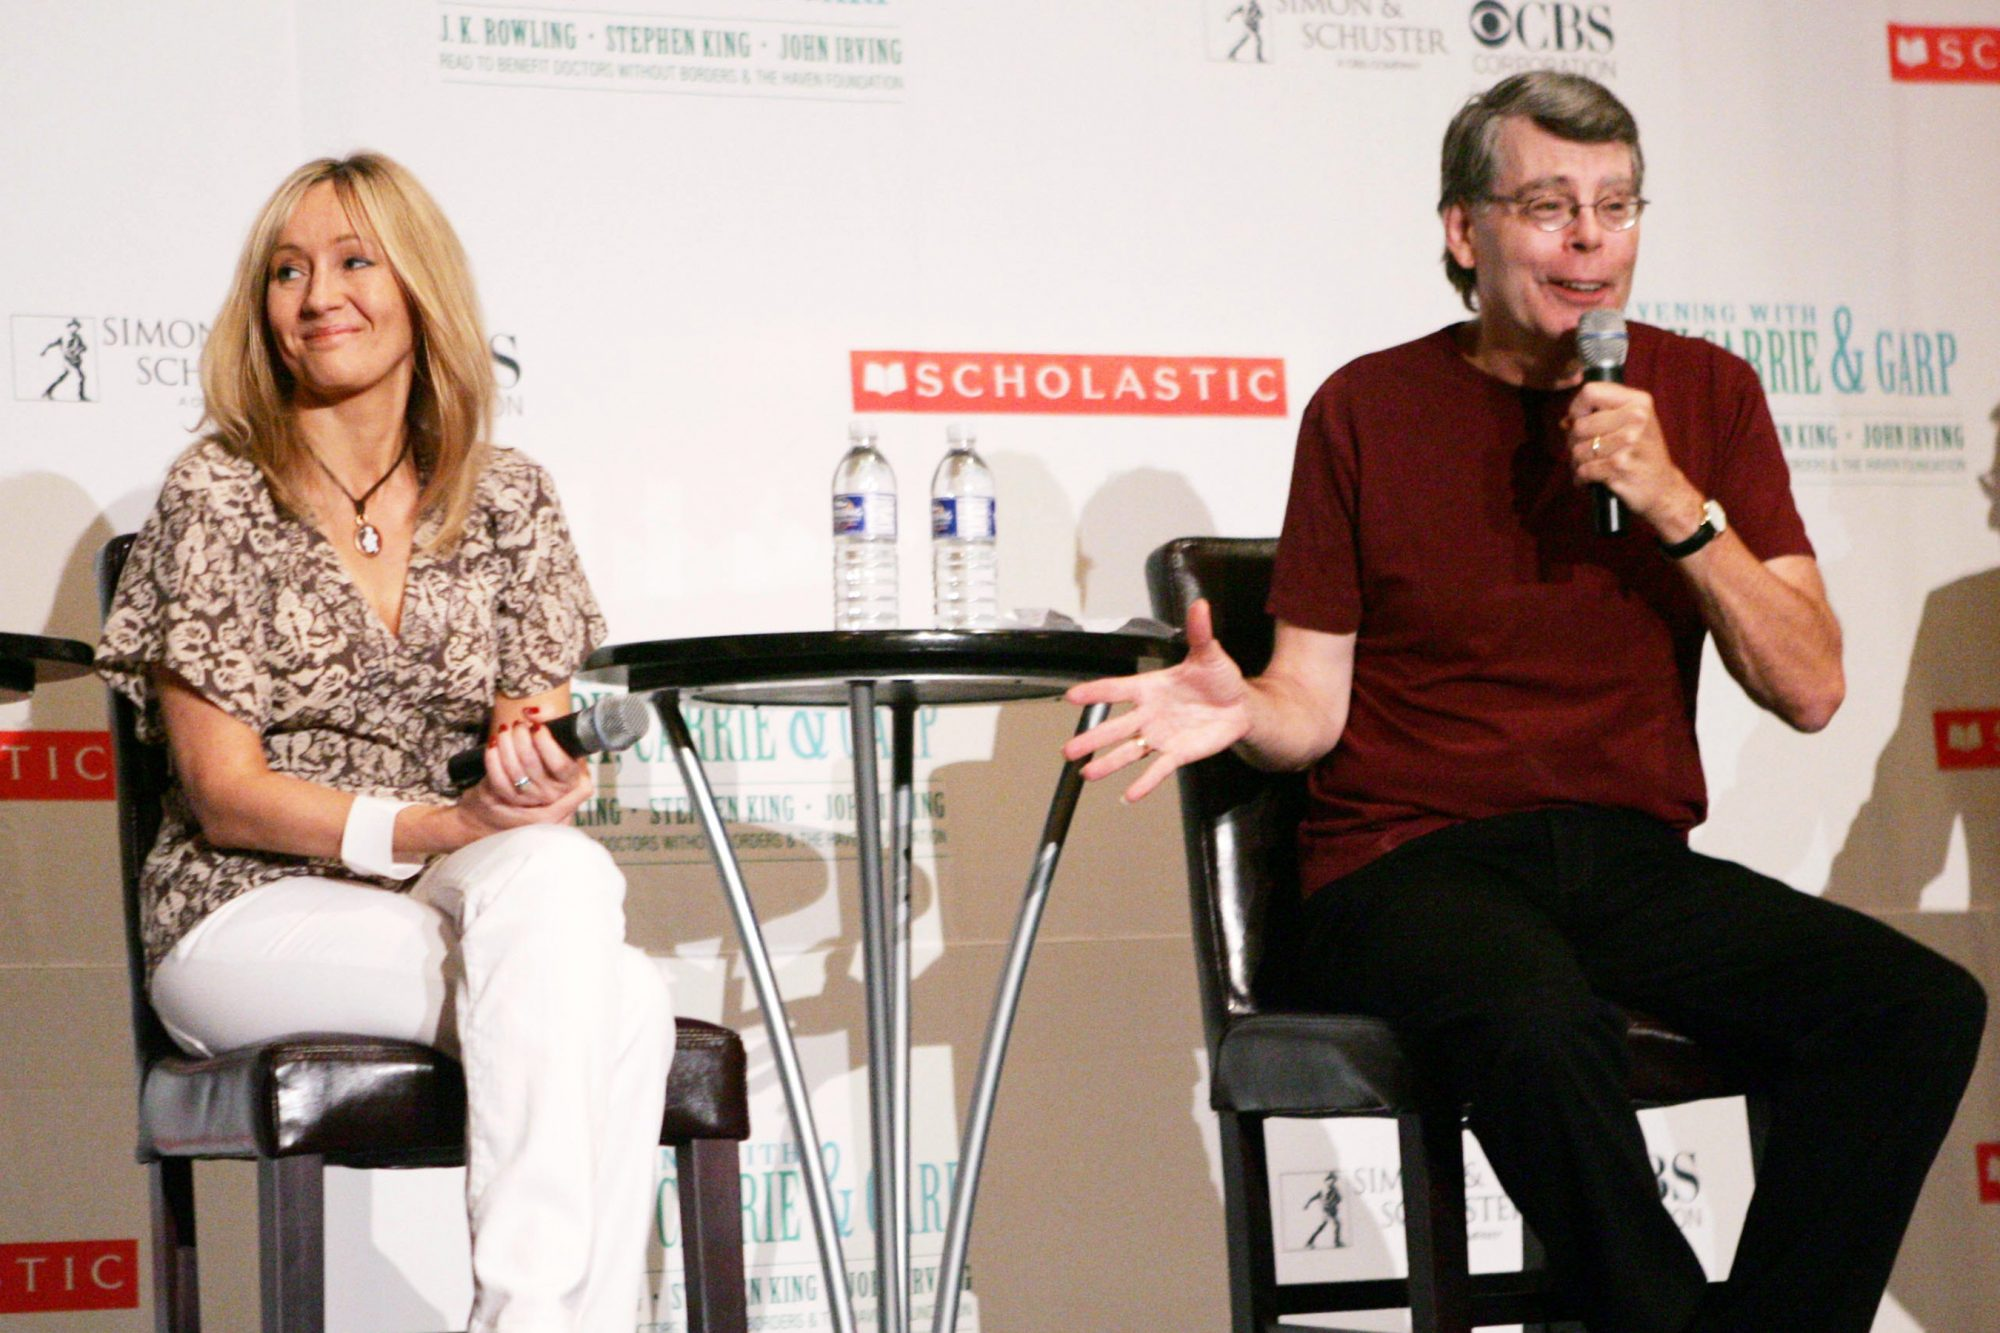 An Evening With Harry, Carrie And Garp Press Conference